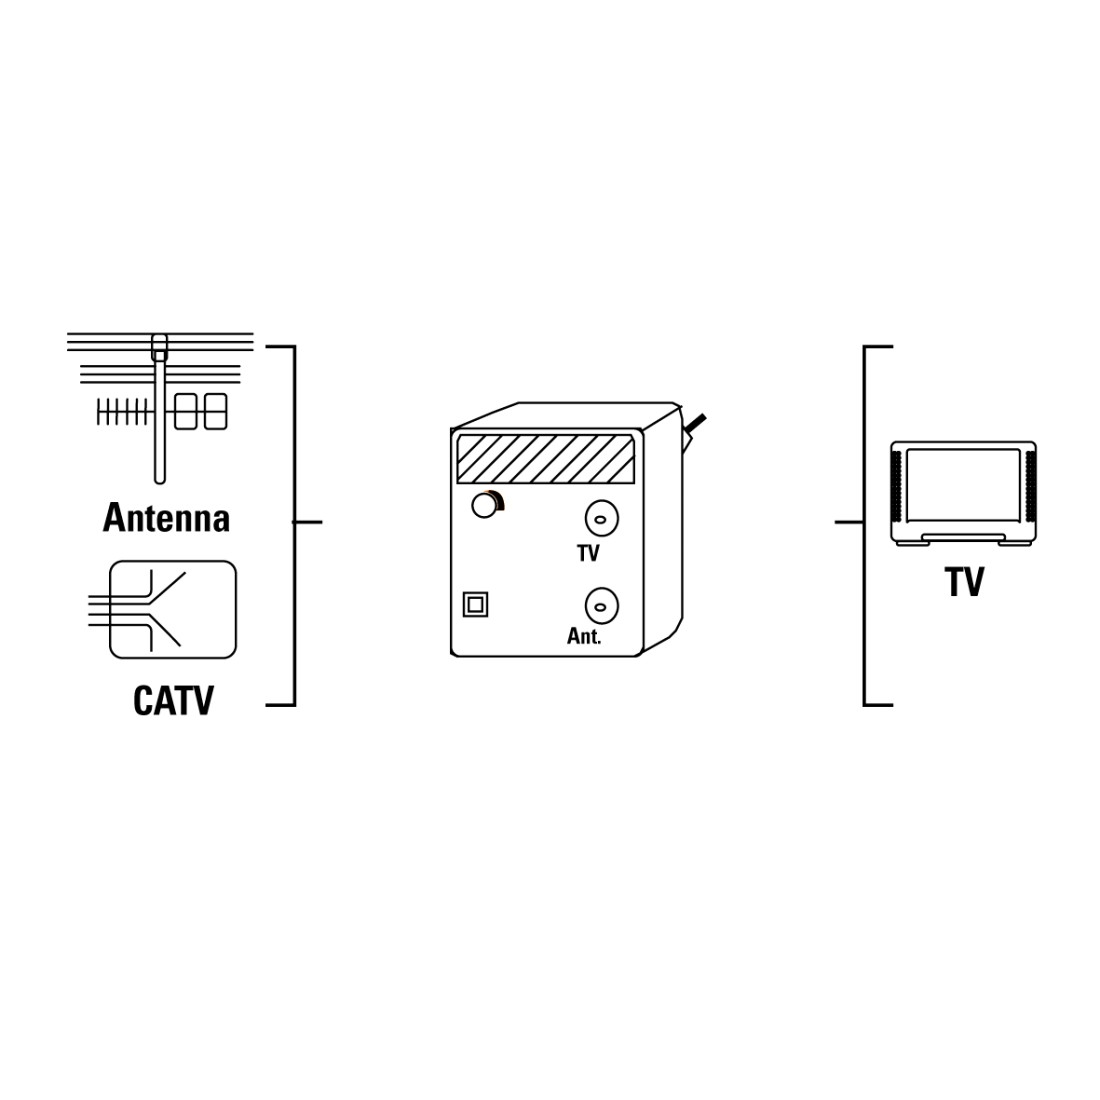 stx High-Res Line Drawing - Hama, Amplificateur large bande/CATV, 20 dB, réglable